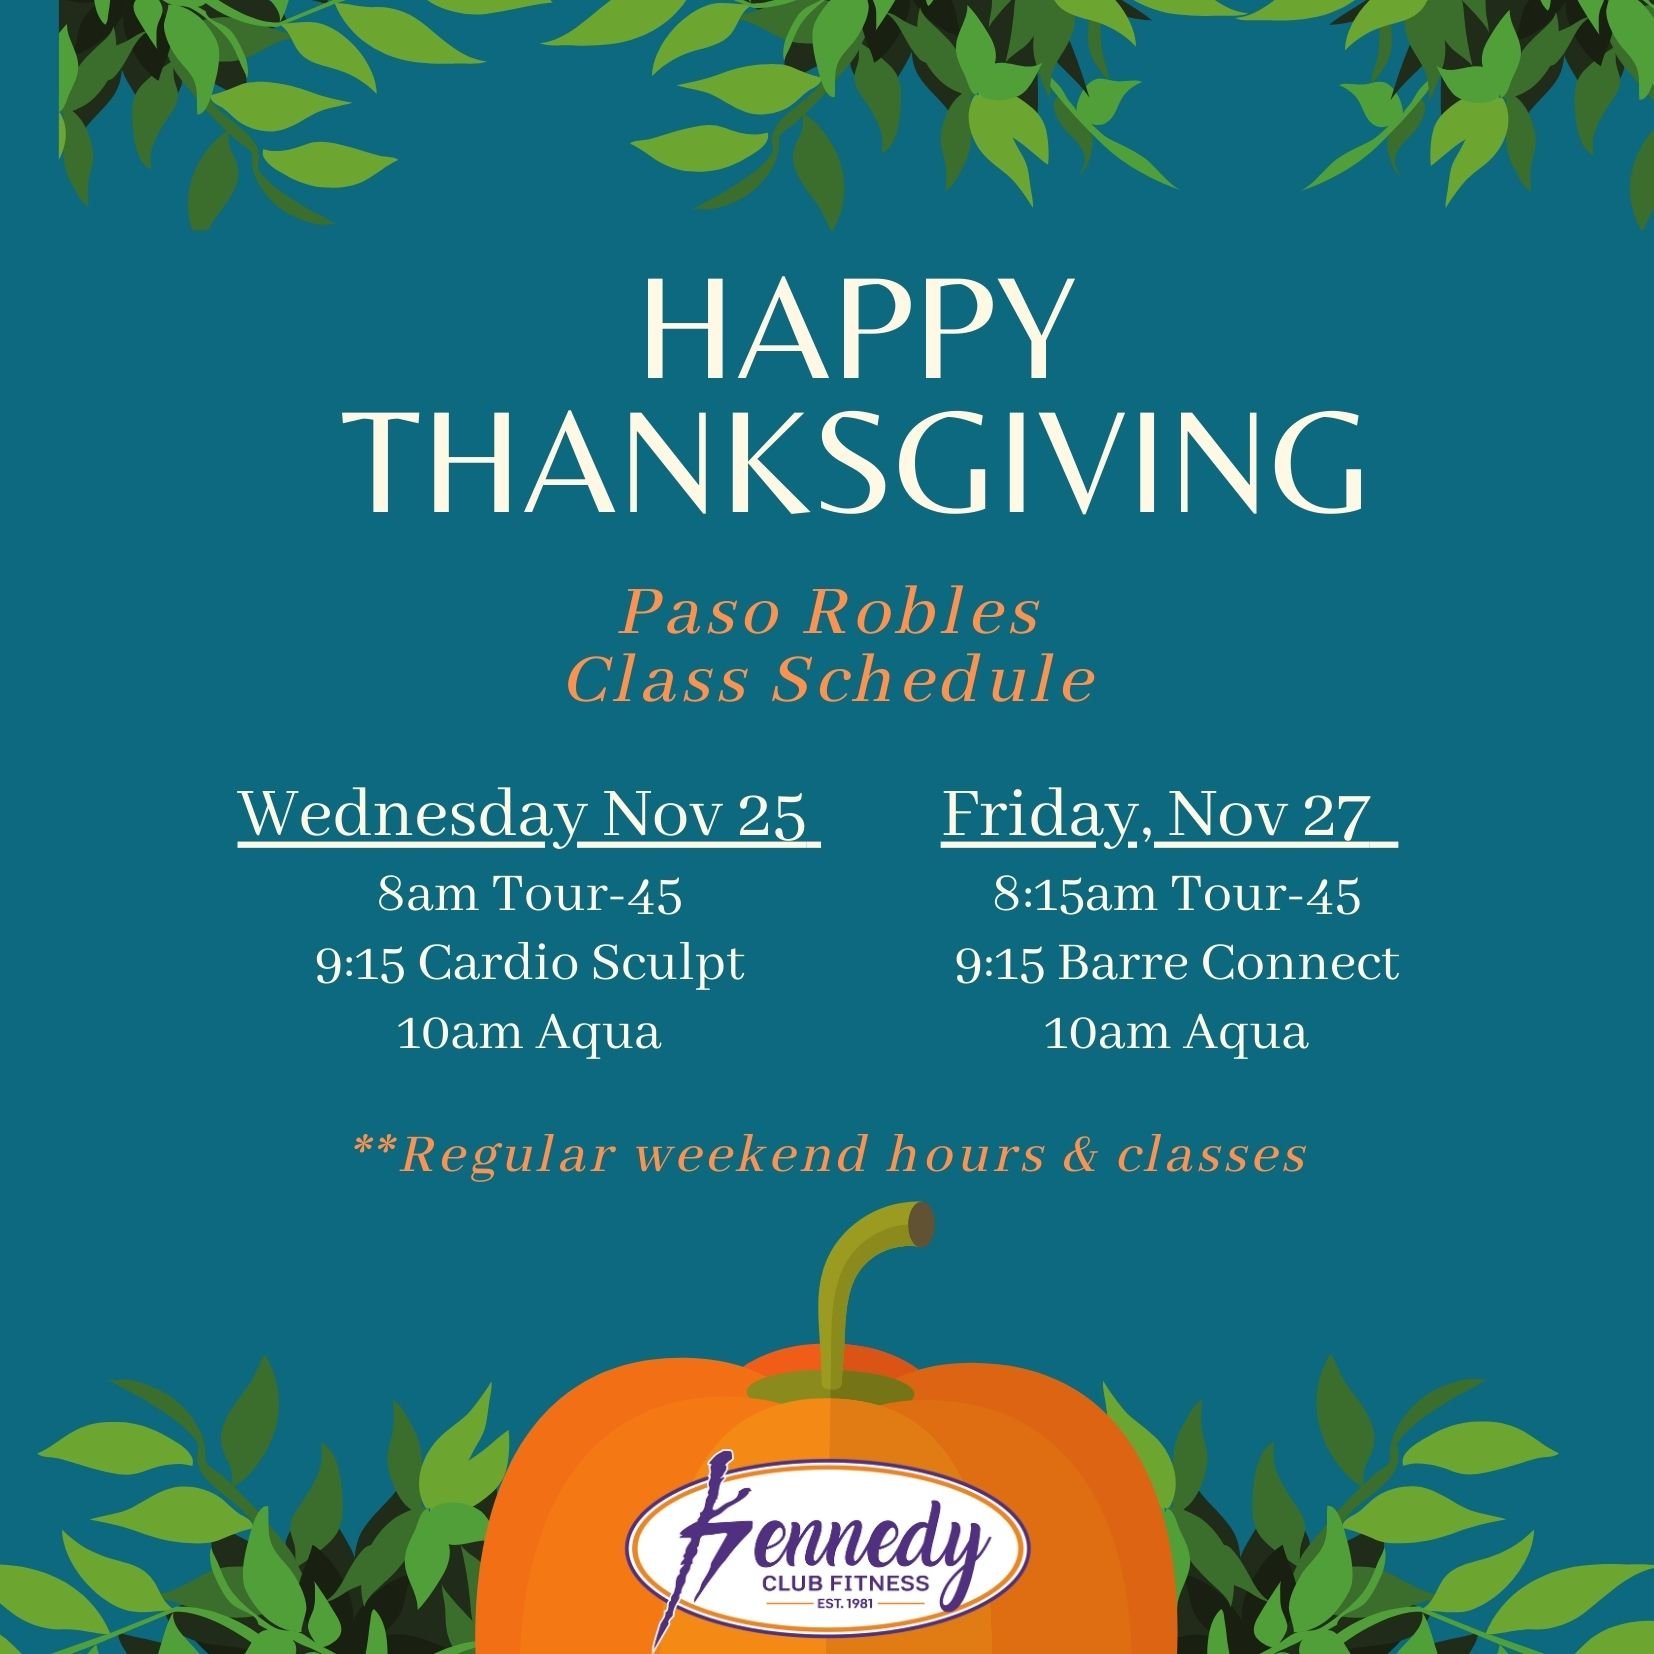 Kennedy Club Fitness Paso Robles Group Exercise Schedule Thanksgiving 2020